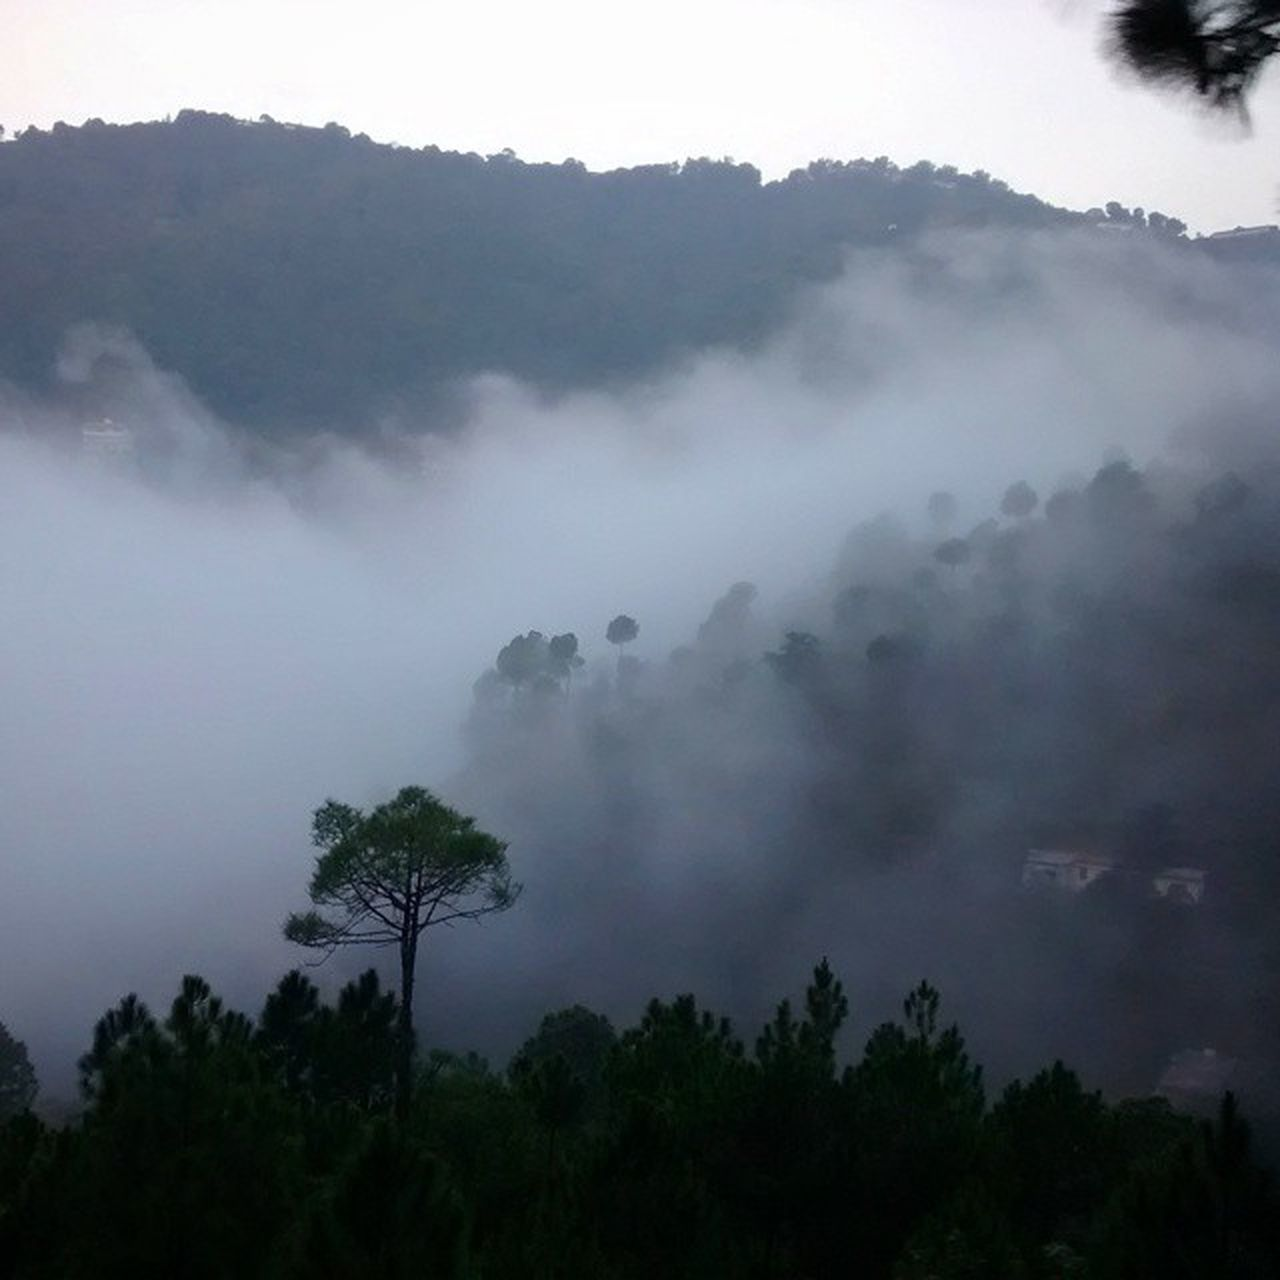 tree, nature, beauty in nature, tranquility, tranquil scene, scenics, outdoors, no people, mountain, landscape, mist, forest, hazy, day, growth, sky, fog